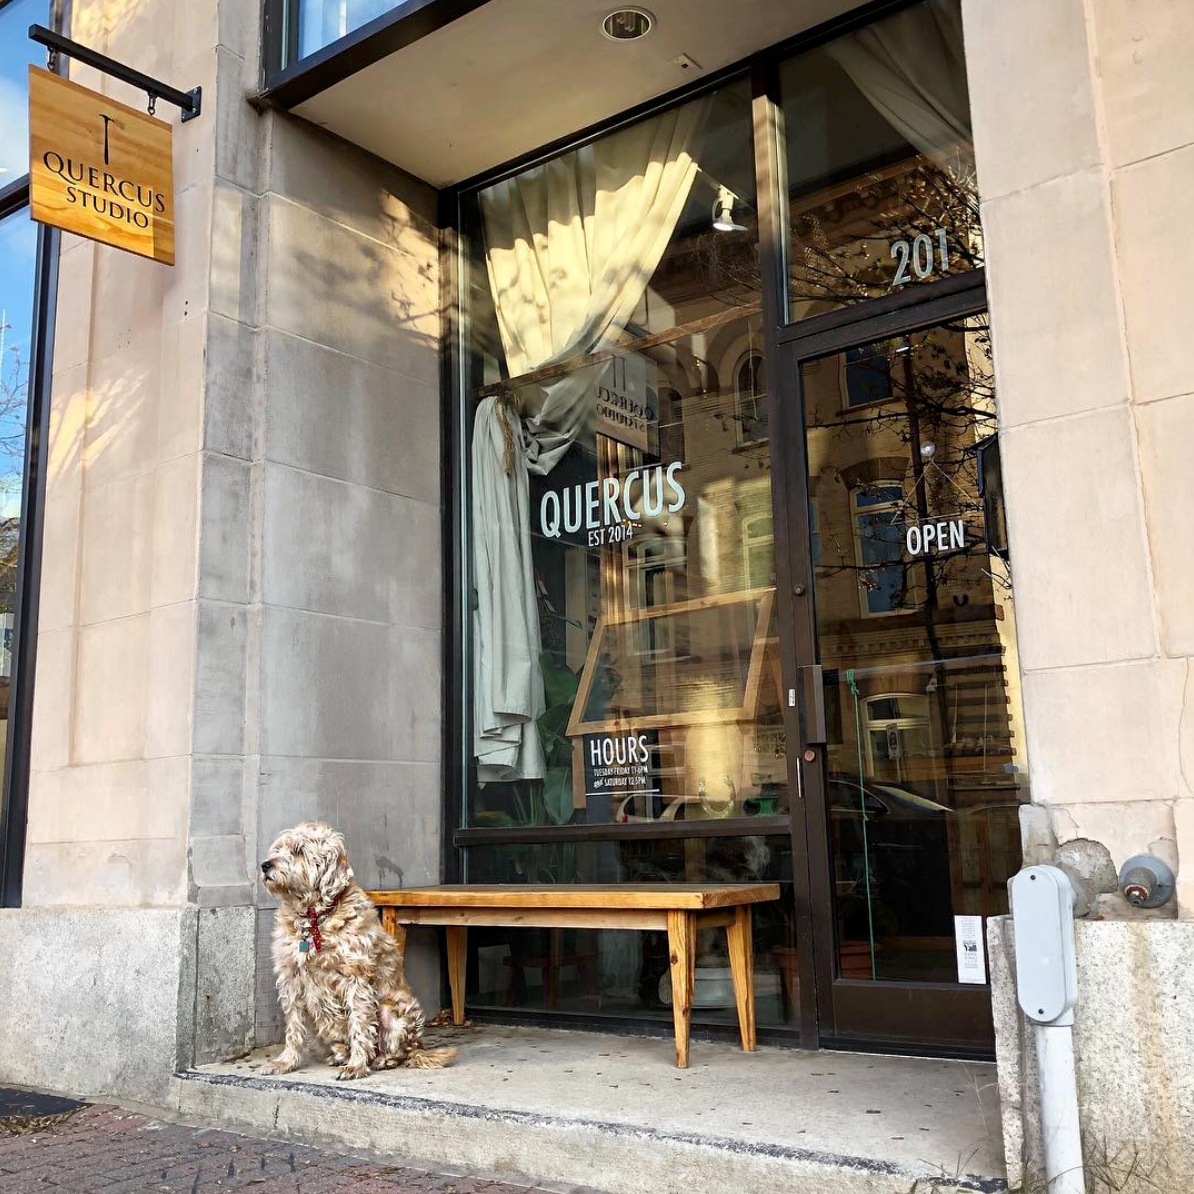 Quercus Studio - A goldsmith studio and boutique that specializes in custom jewelry, heirloom repurposing, and features a selection of curated gift items.201 S Salisbury St.